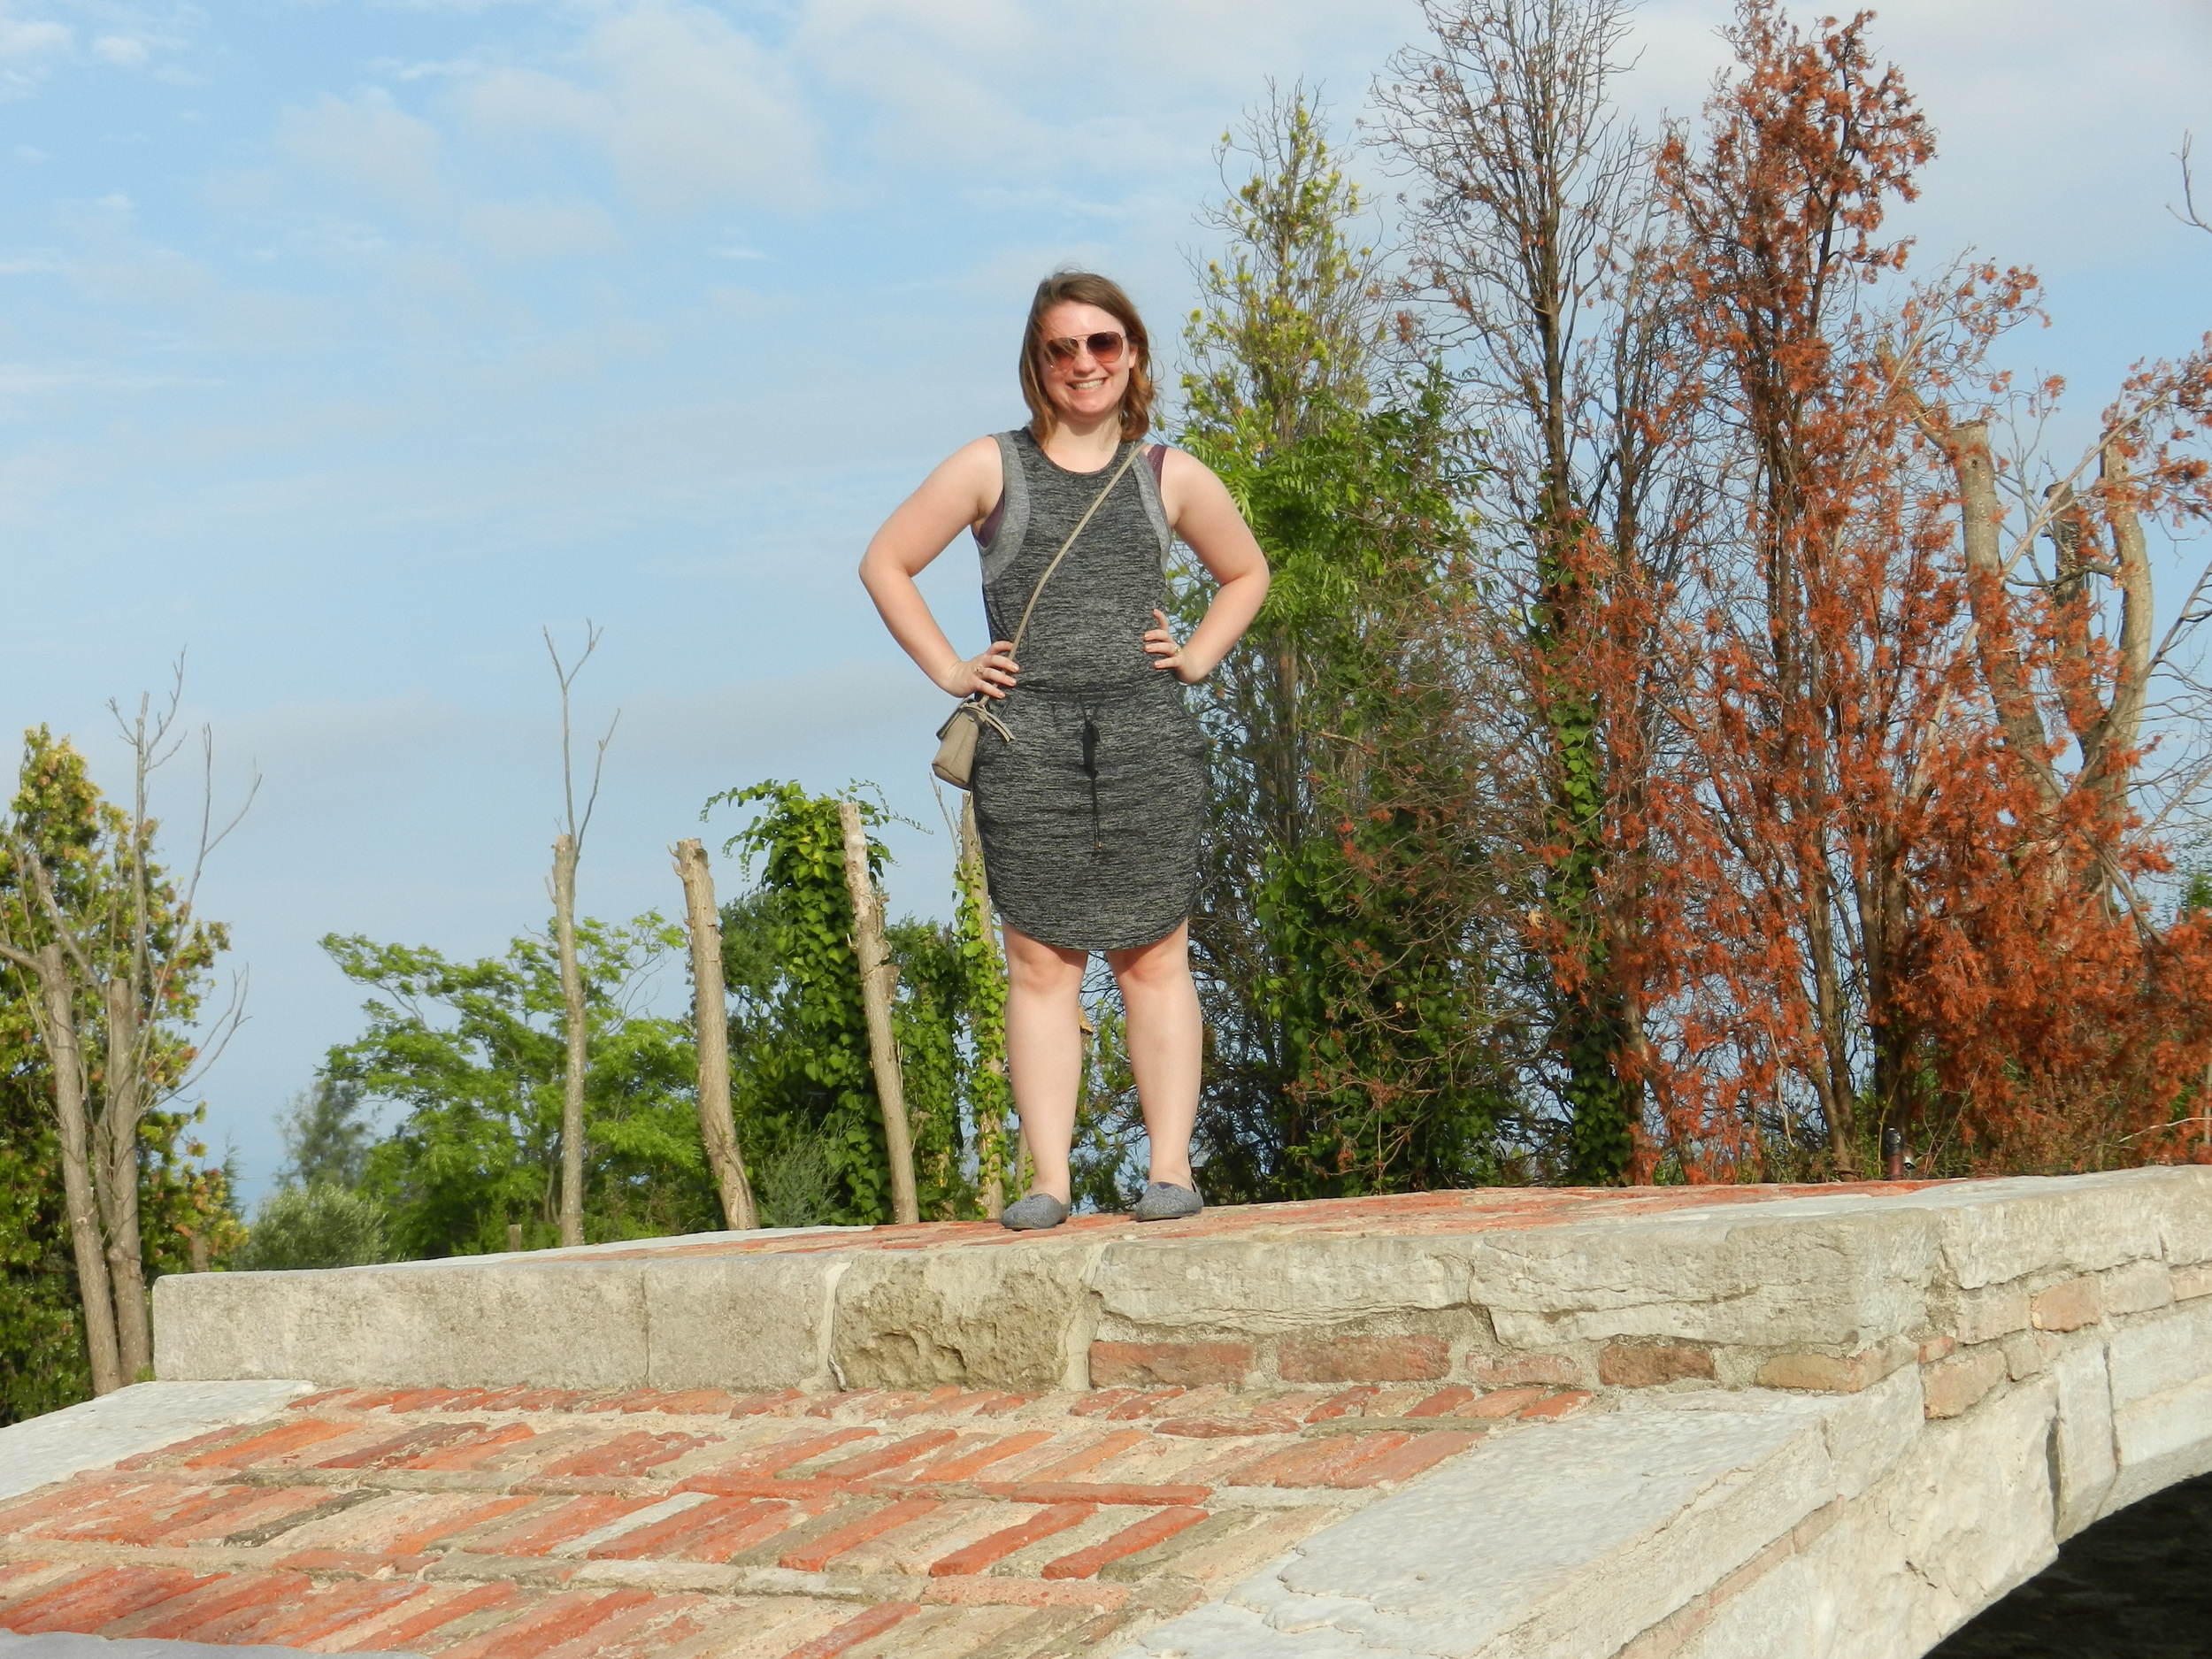 If you must take cheesy tourist photos, may I recommend abandoned Torcello Island?